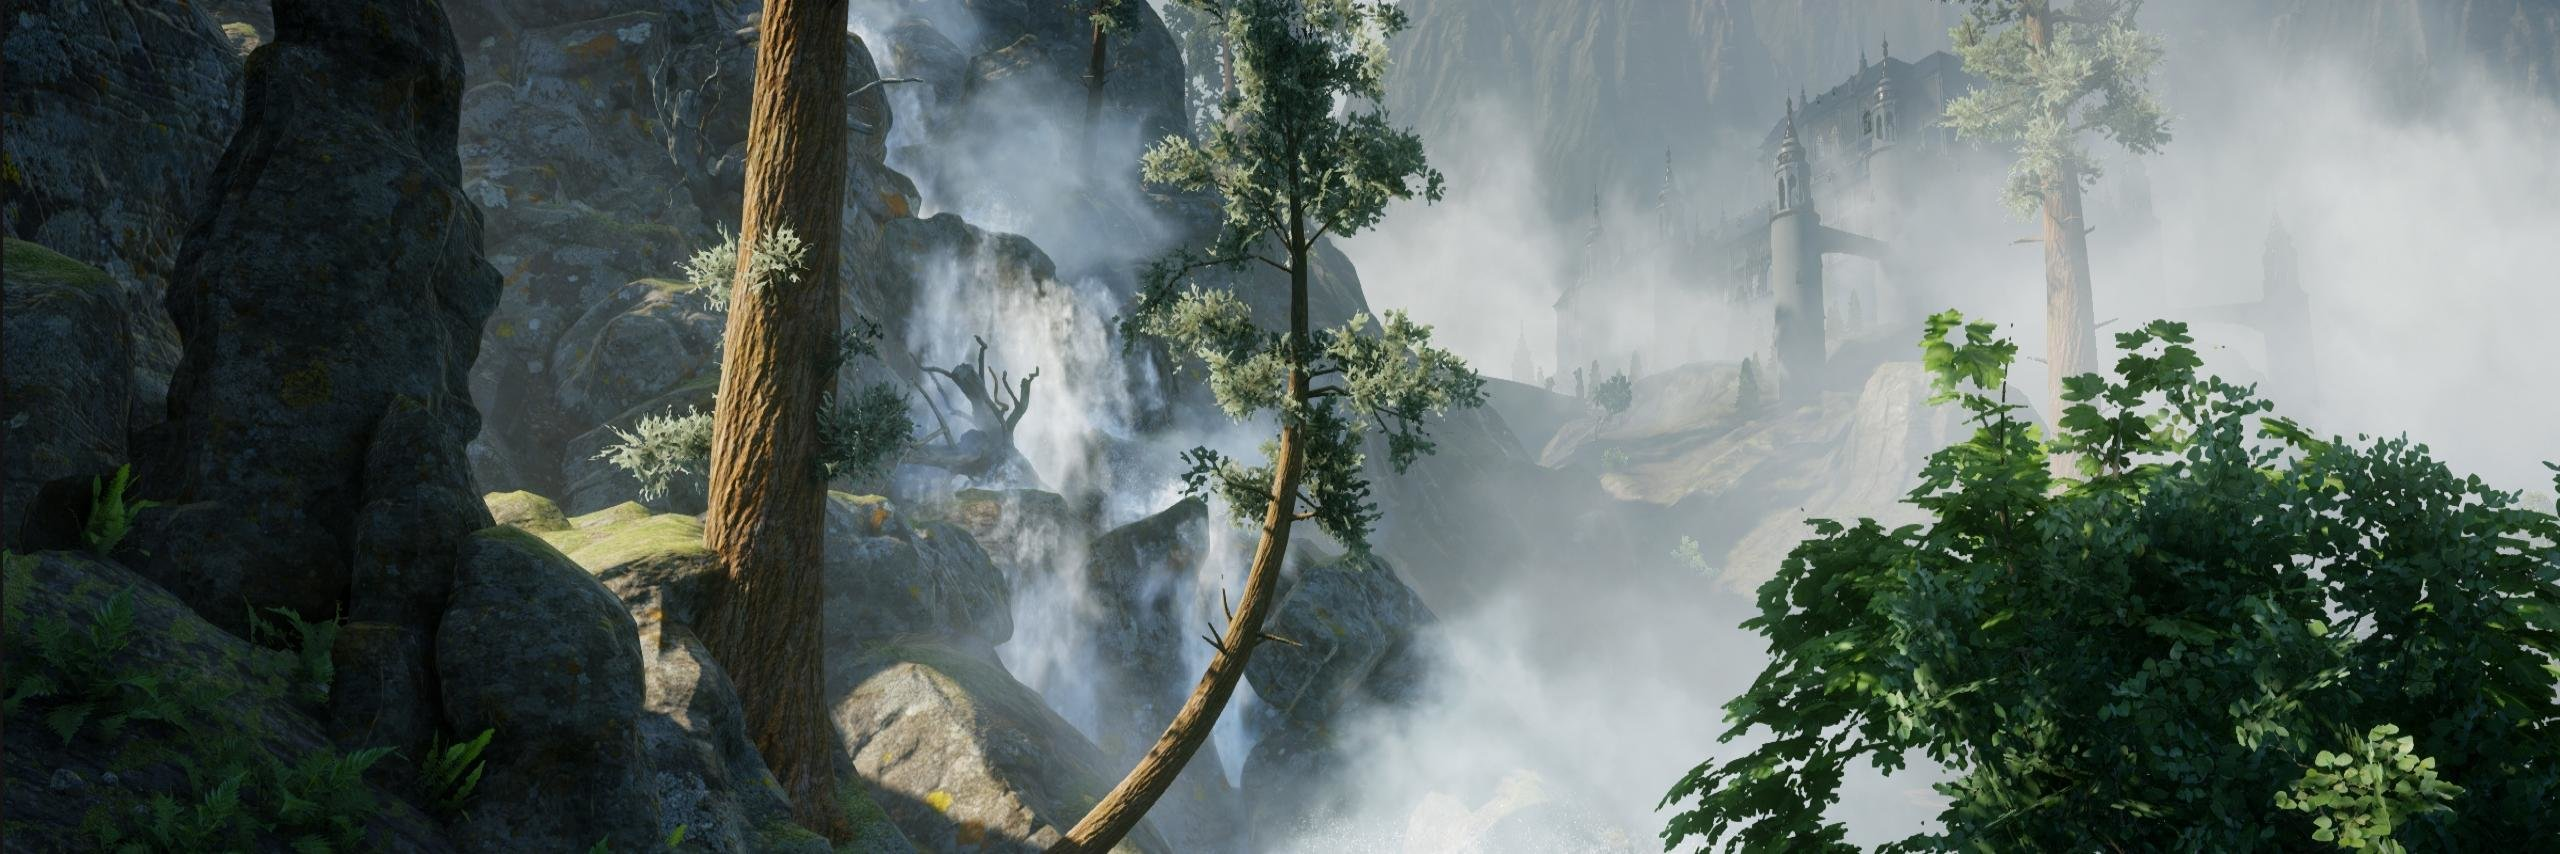 Free Dragon Age: Inquisition high quality wallpaper ID:204649 for dual monitor 2560x854 desktop